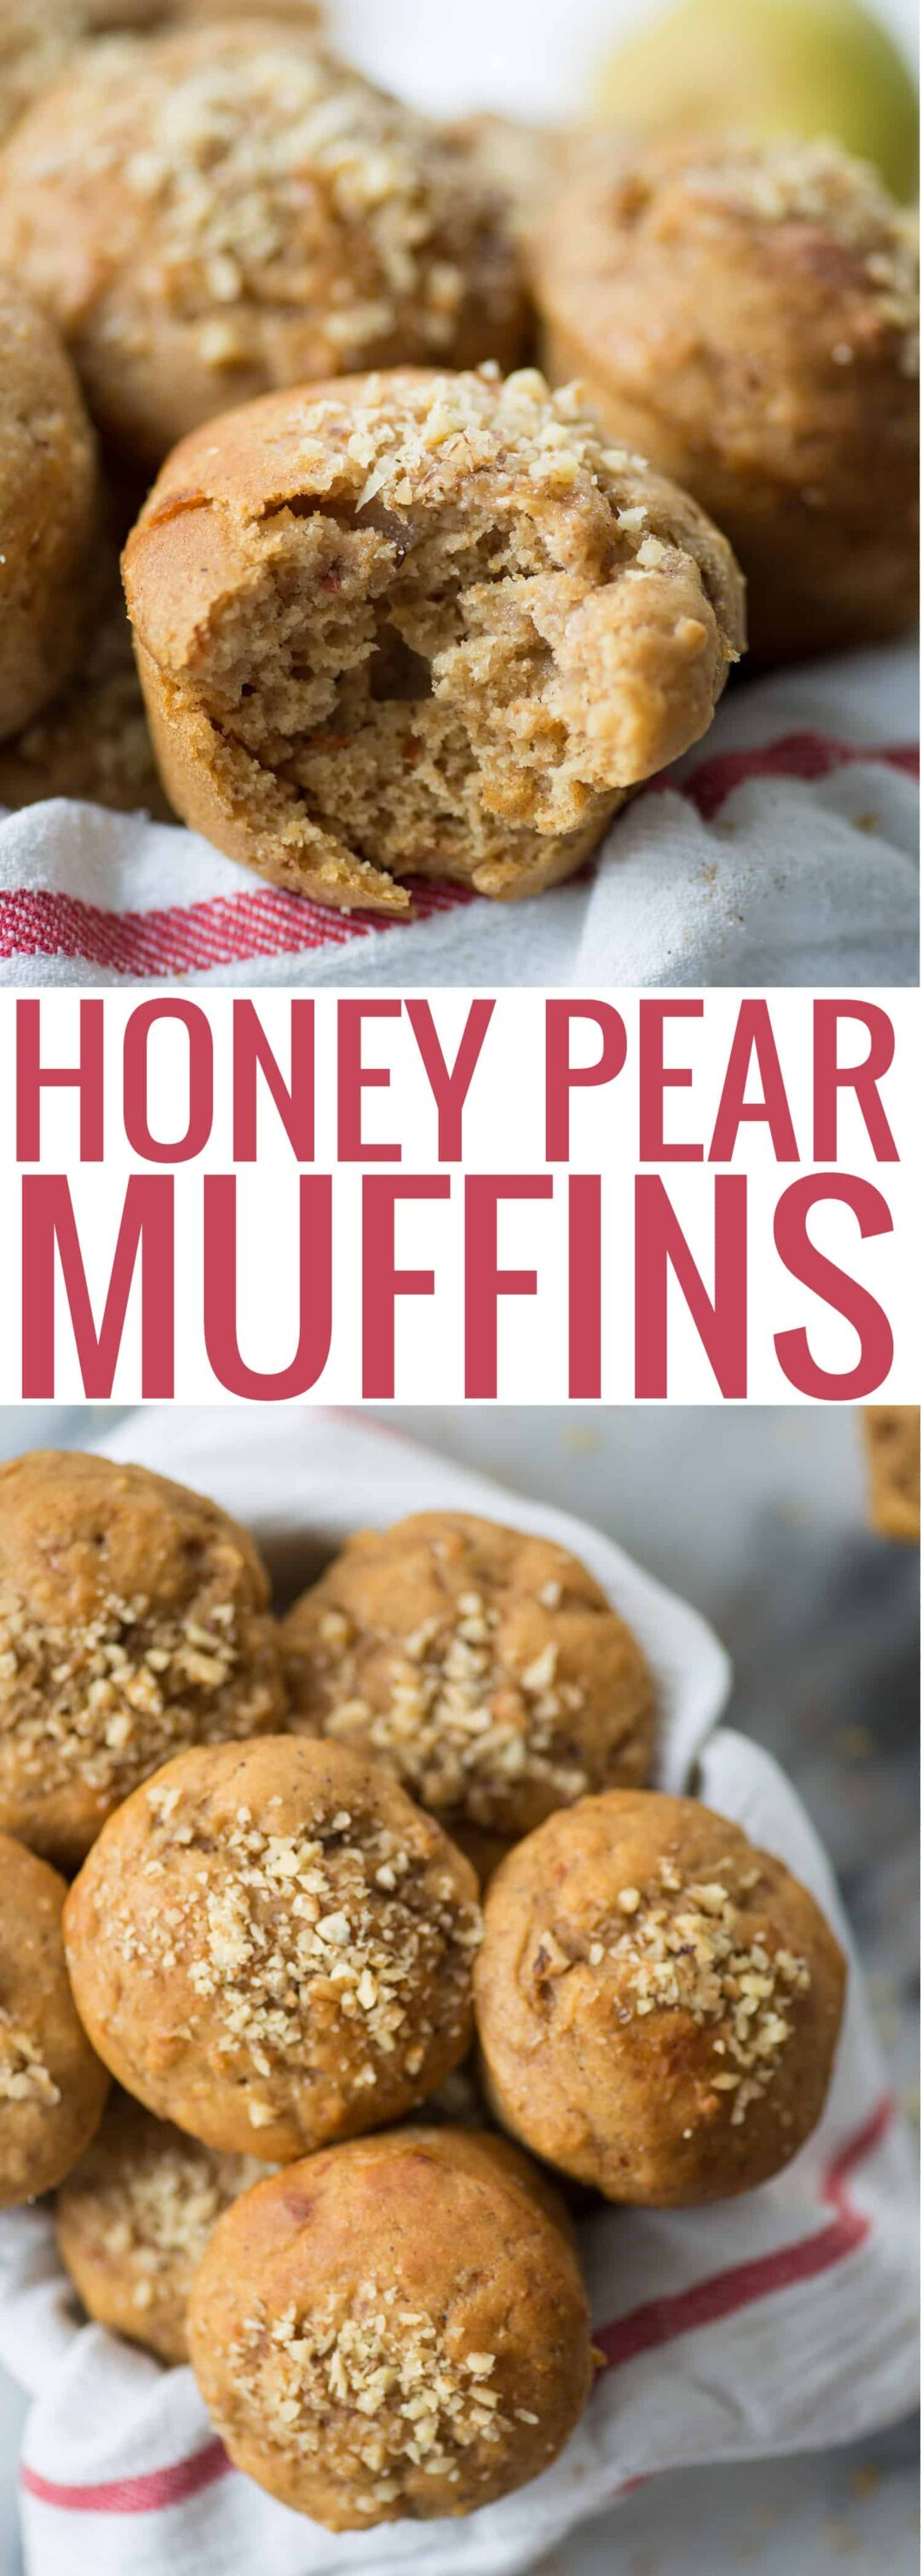 Honey Pear Muffins! These lightly sweetened muffins are perfect for snack or breakfast. | www.delishknowledge.com